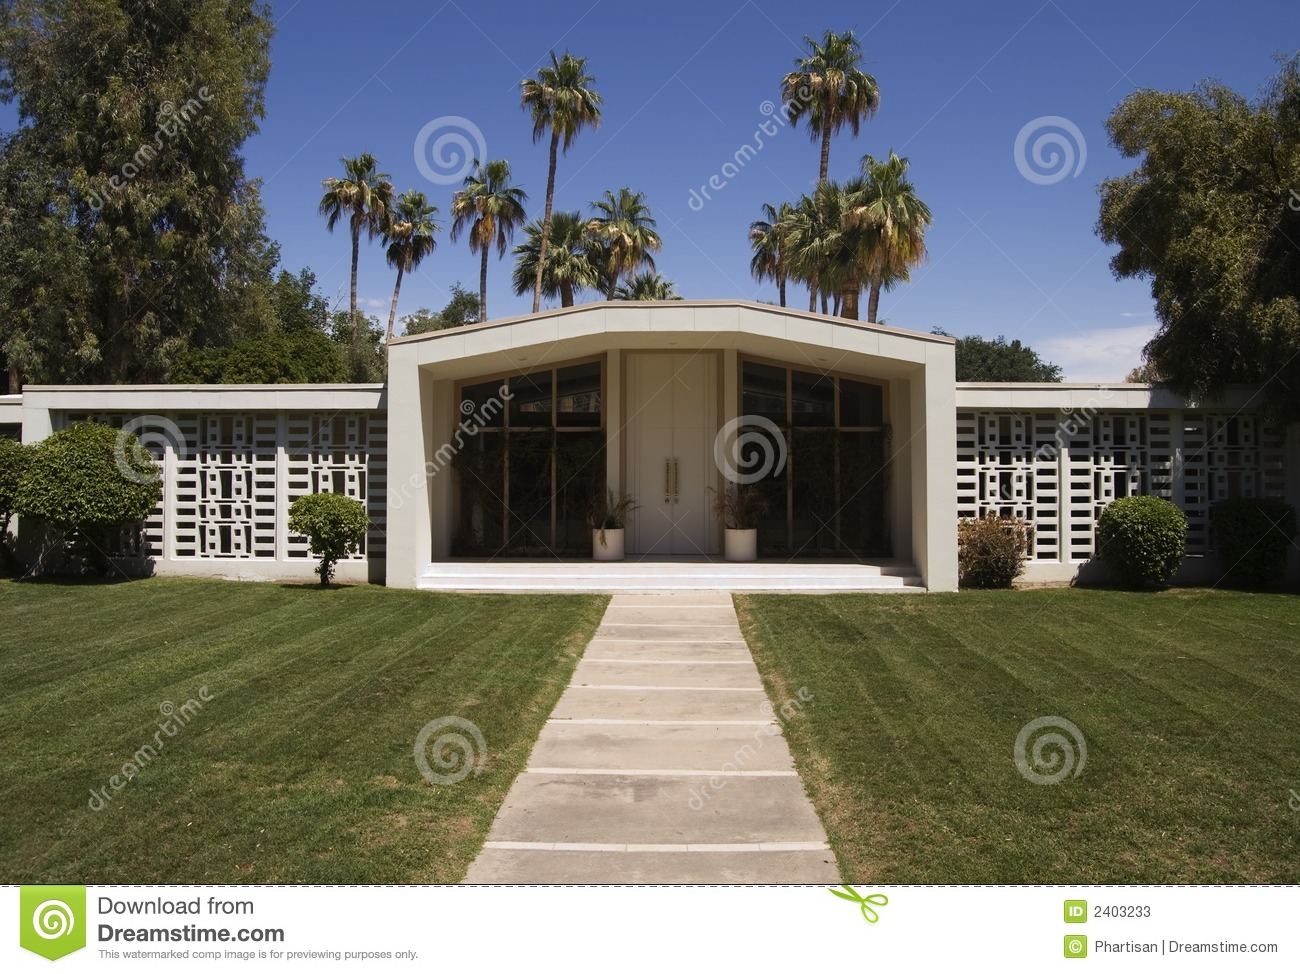 Midcentury Modern Architecture Stock Photos Image